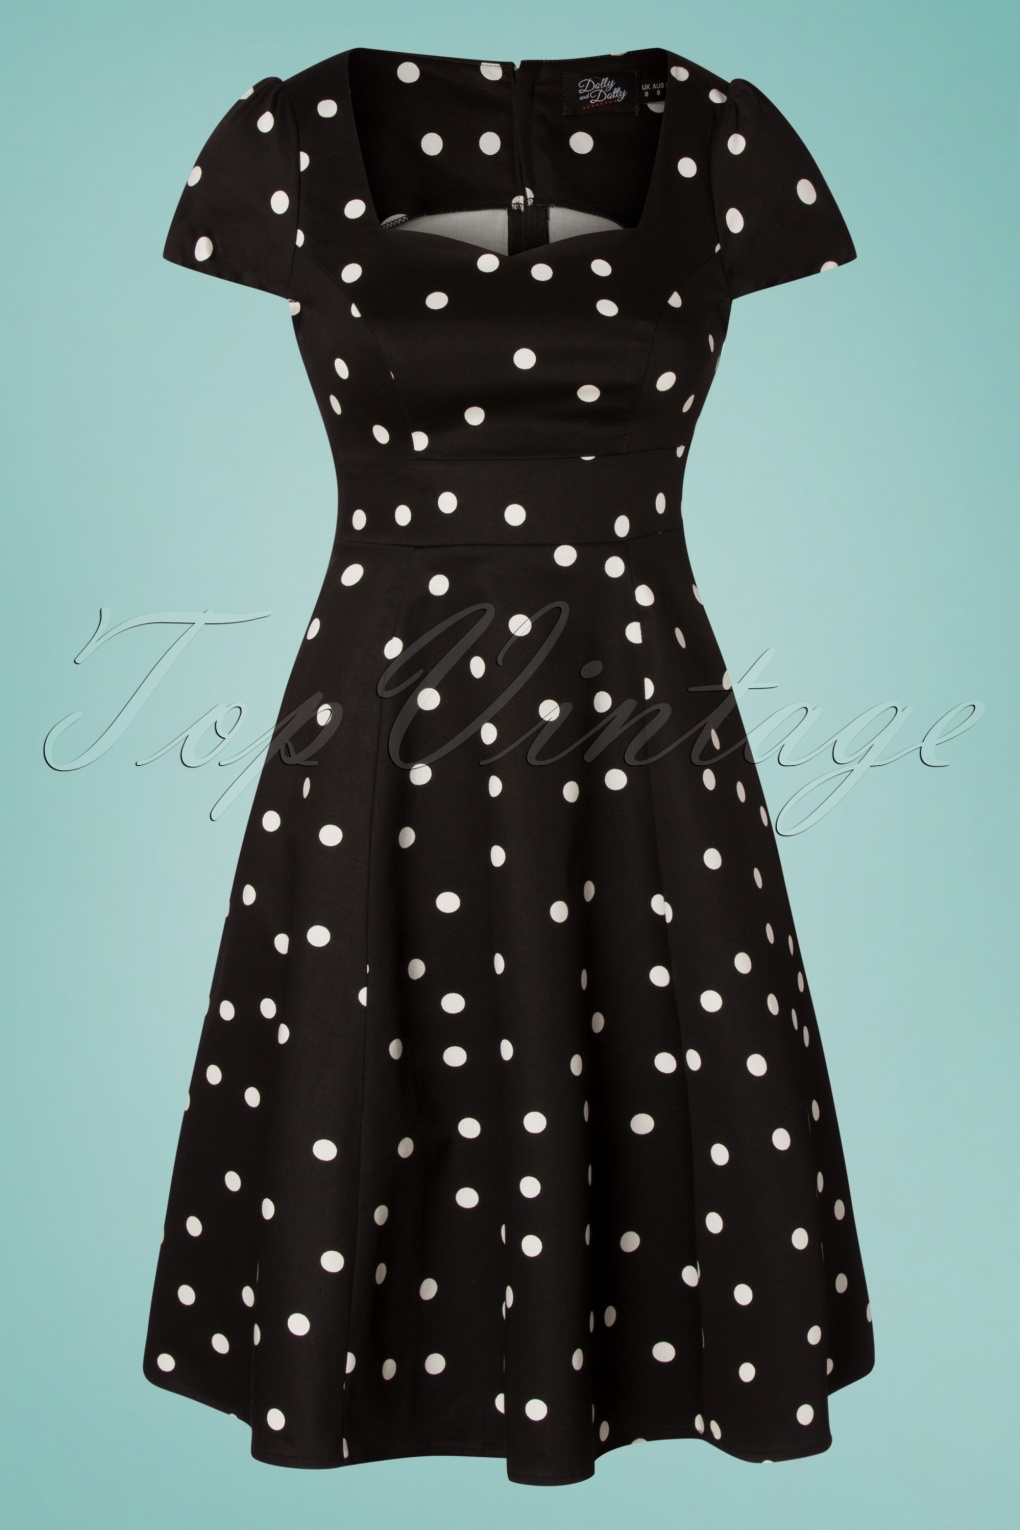 500 Vintage Style Dresses for Sale | Vintage Inspired Dresses 50s Claudia Polkadot Swing Dress in Black £43.83 AT vintagedancer.com